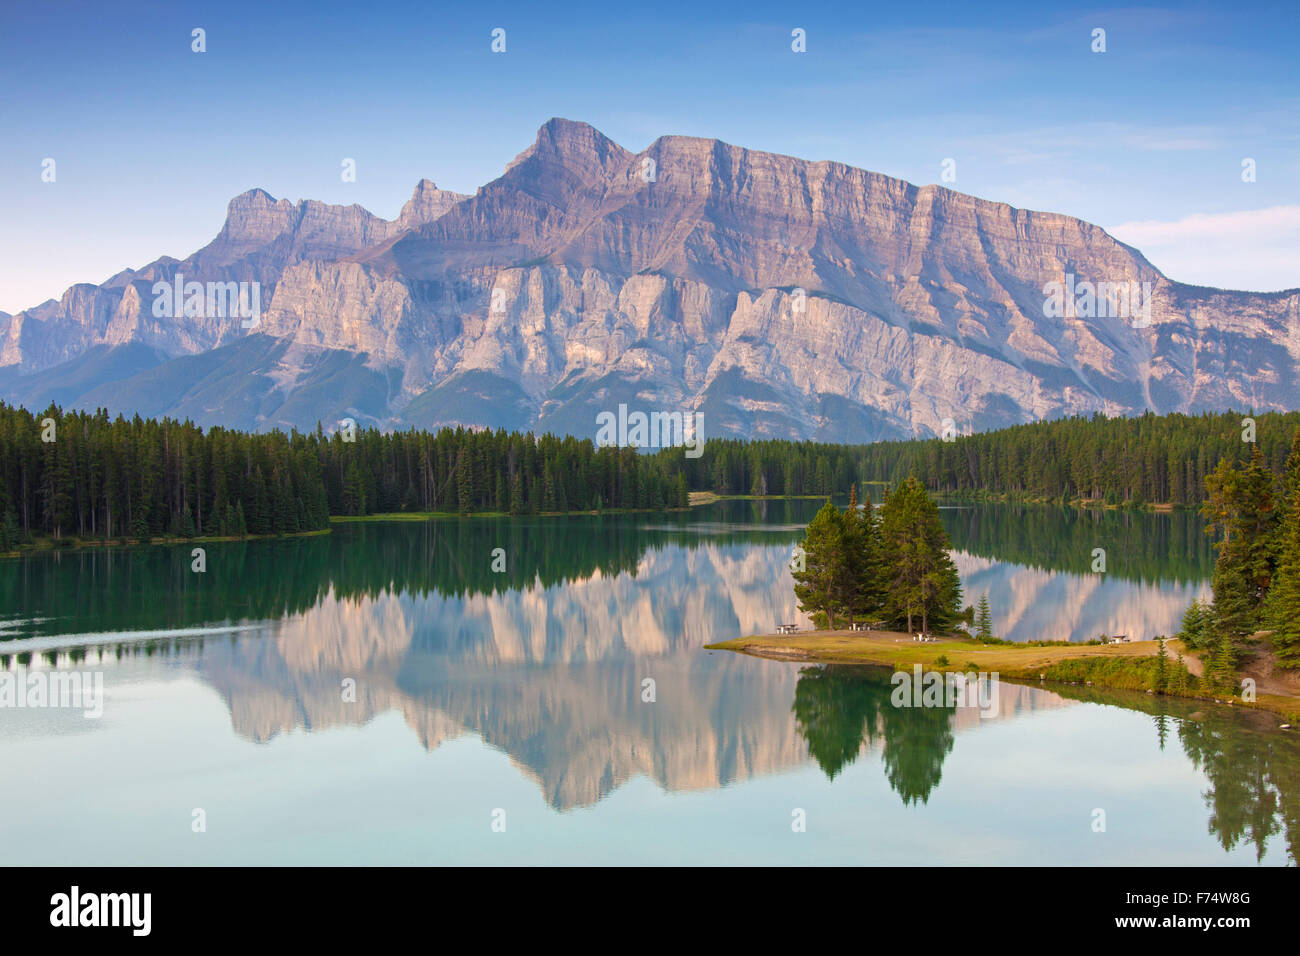 Mount Rundle and Two Jack Lake, Banff National Park, Alberta, Canadian Rockies, Canada Stock Photo